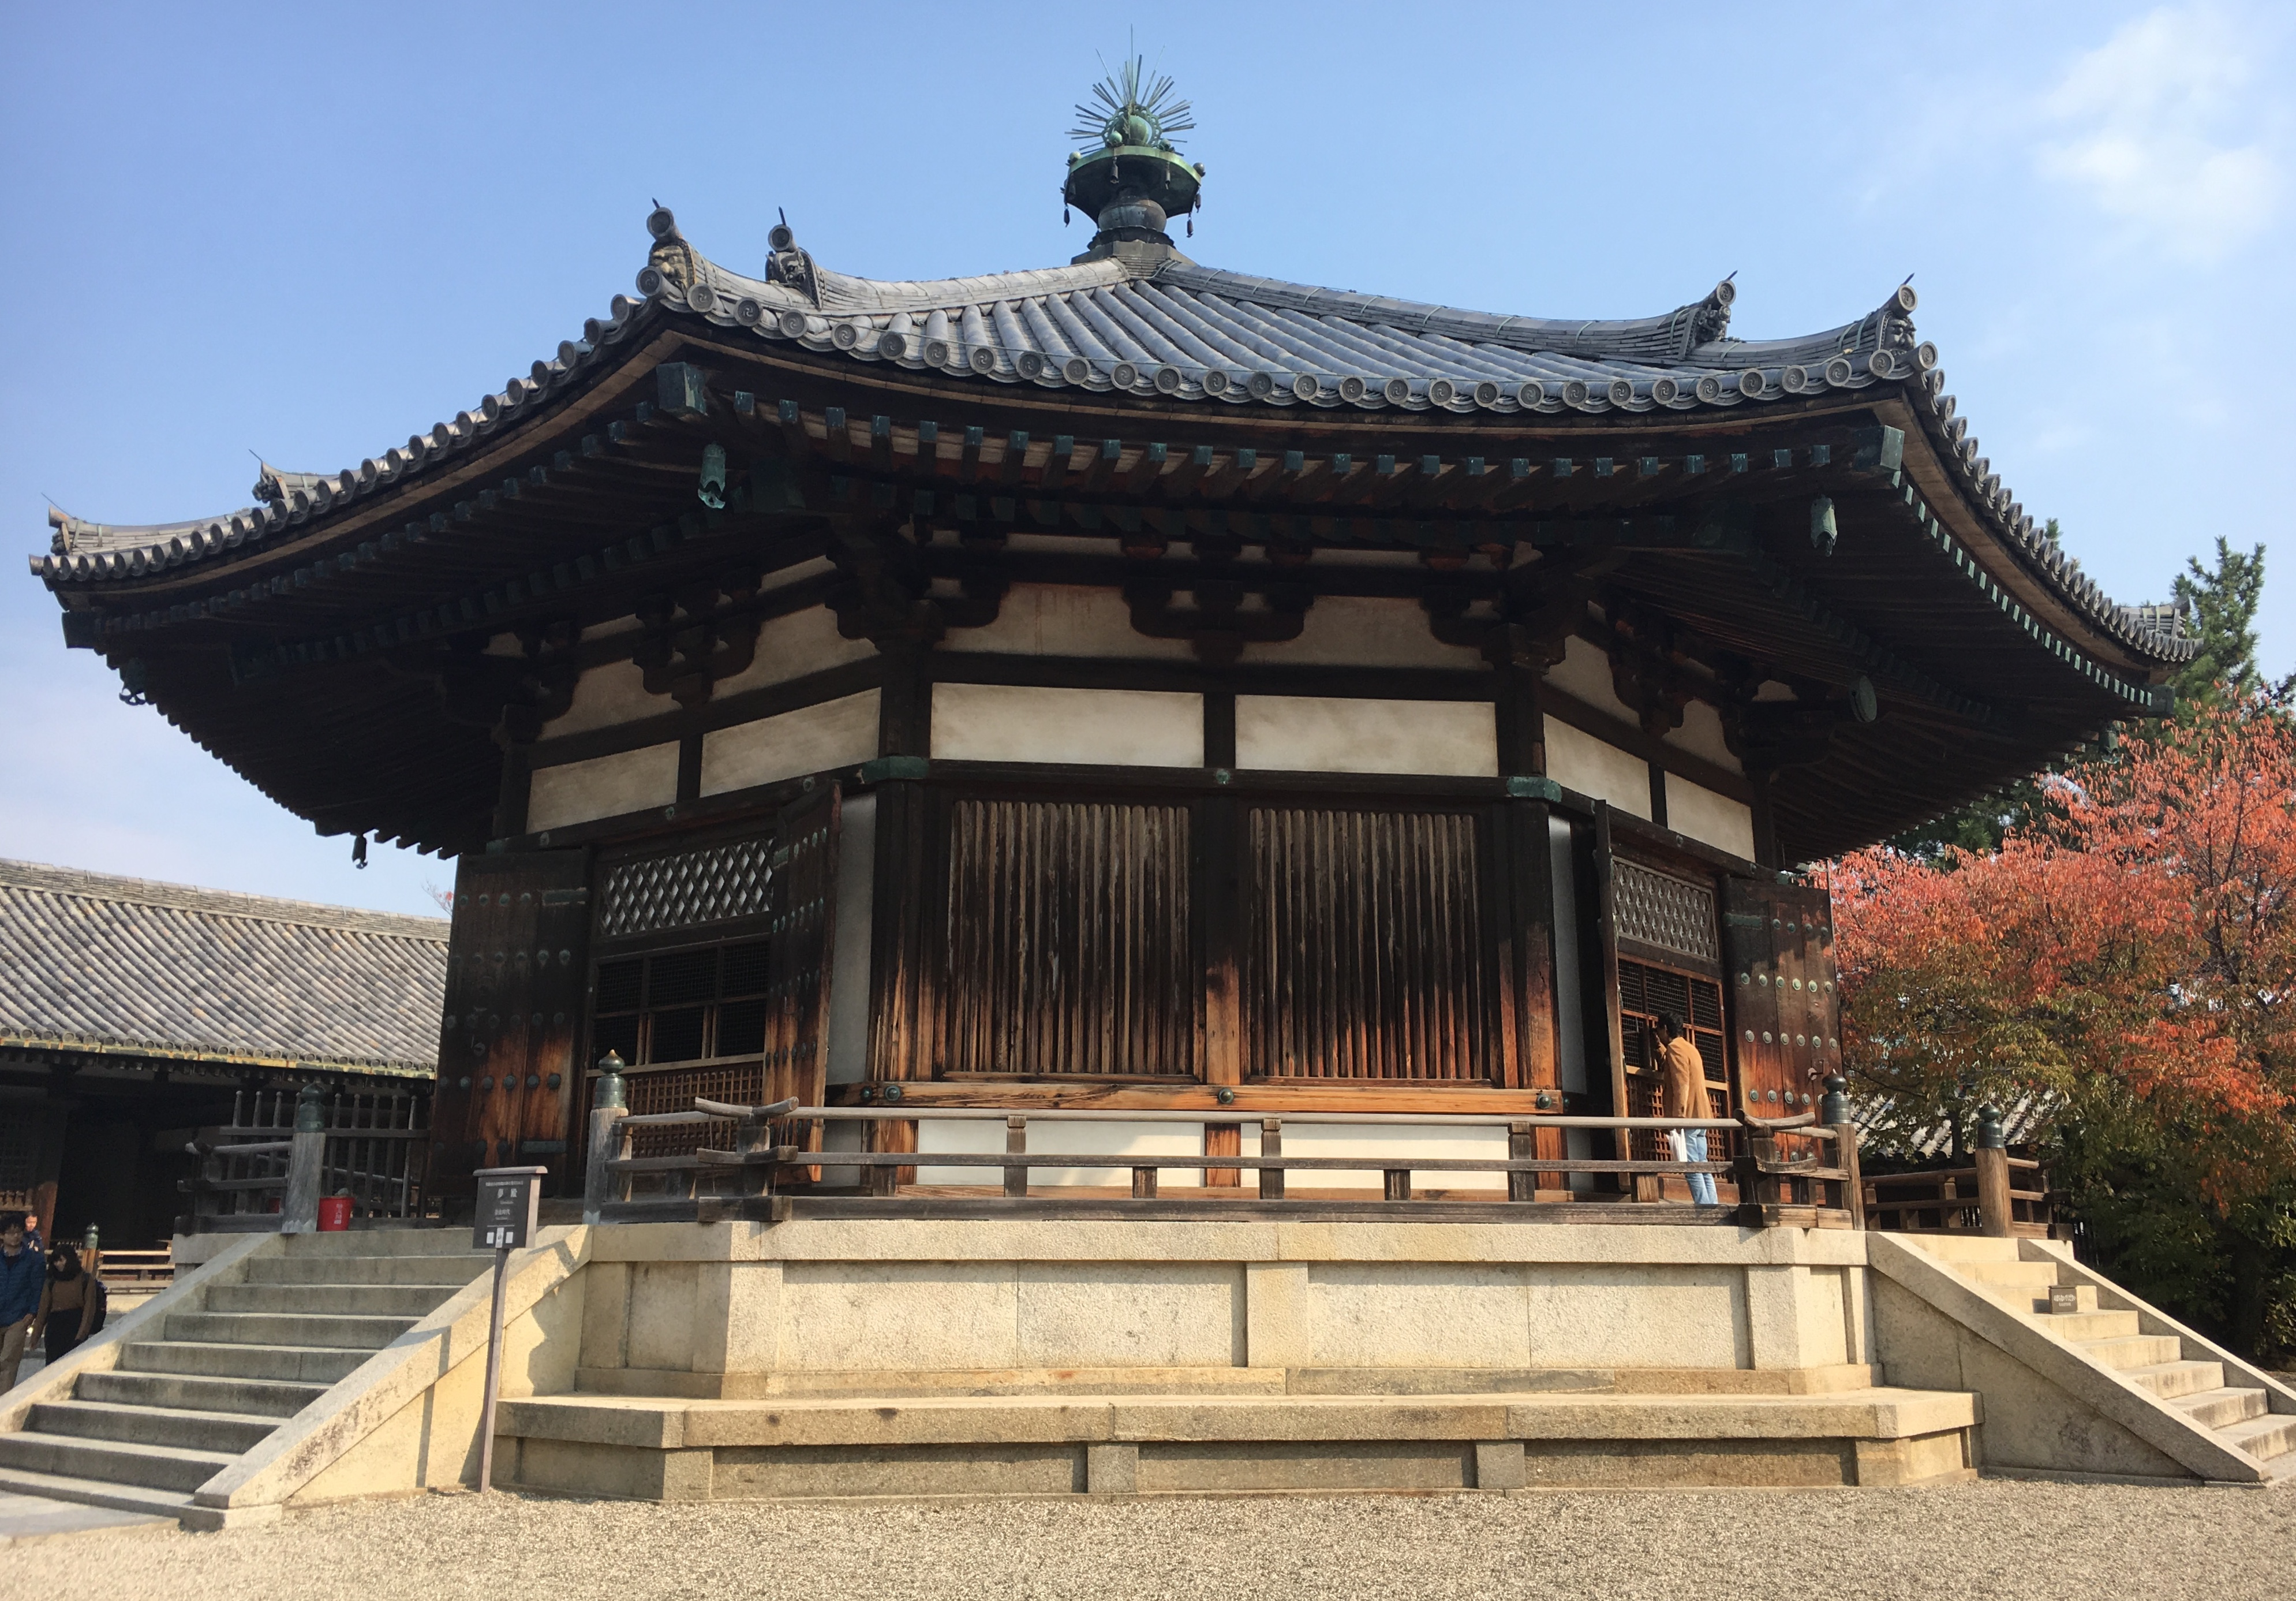 octagon shaped yumedono building in Horyu-ji temple surrounded by bright red leaves